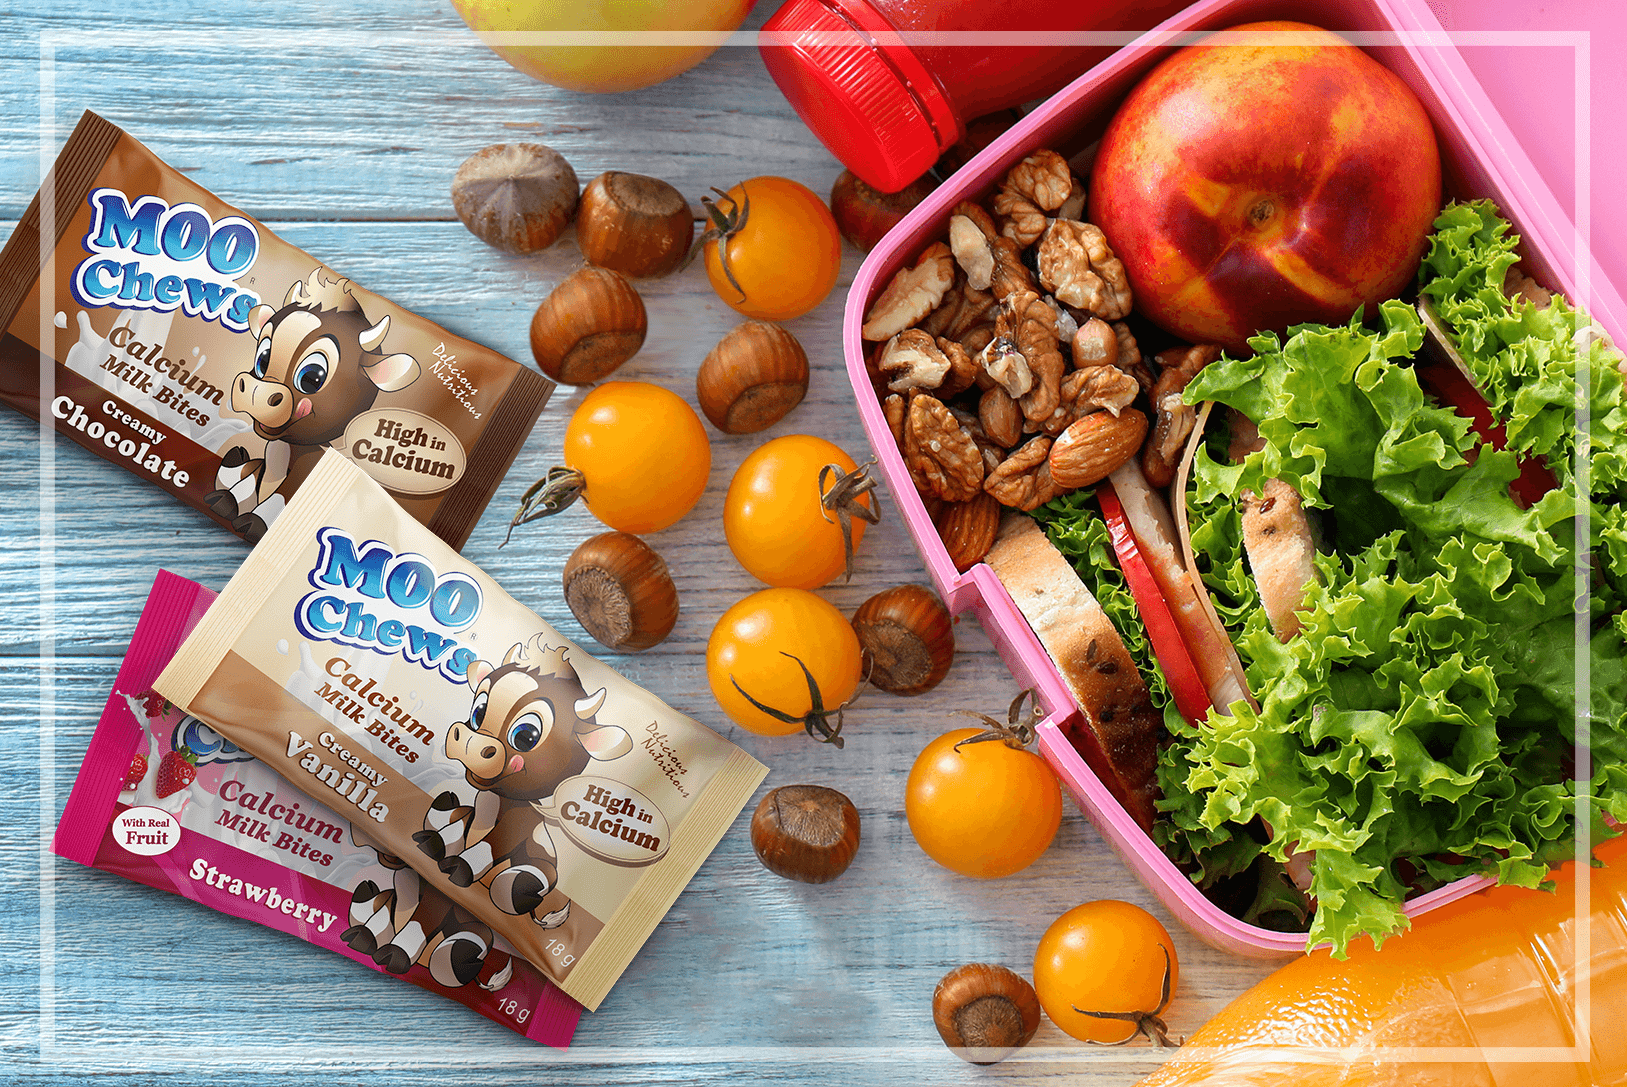 Moo Chews give your kids a healthy energy boost without all that highly refined sugar. Available in 3 yummy flavours: Chocolate, Strawberry, and Vanilla. Available in select Pak 'n Save and New World stores.